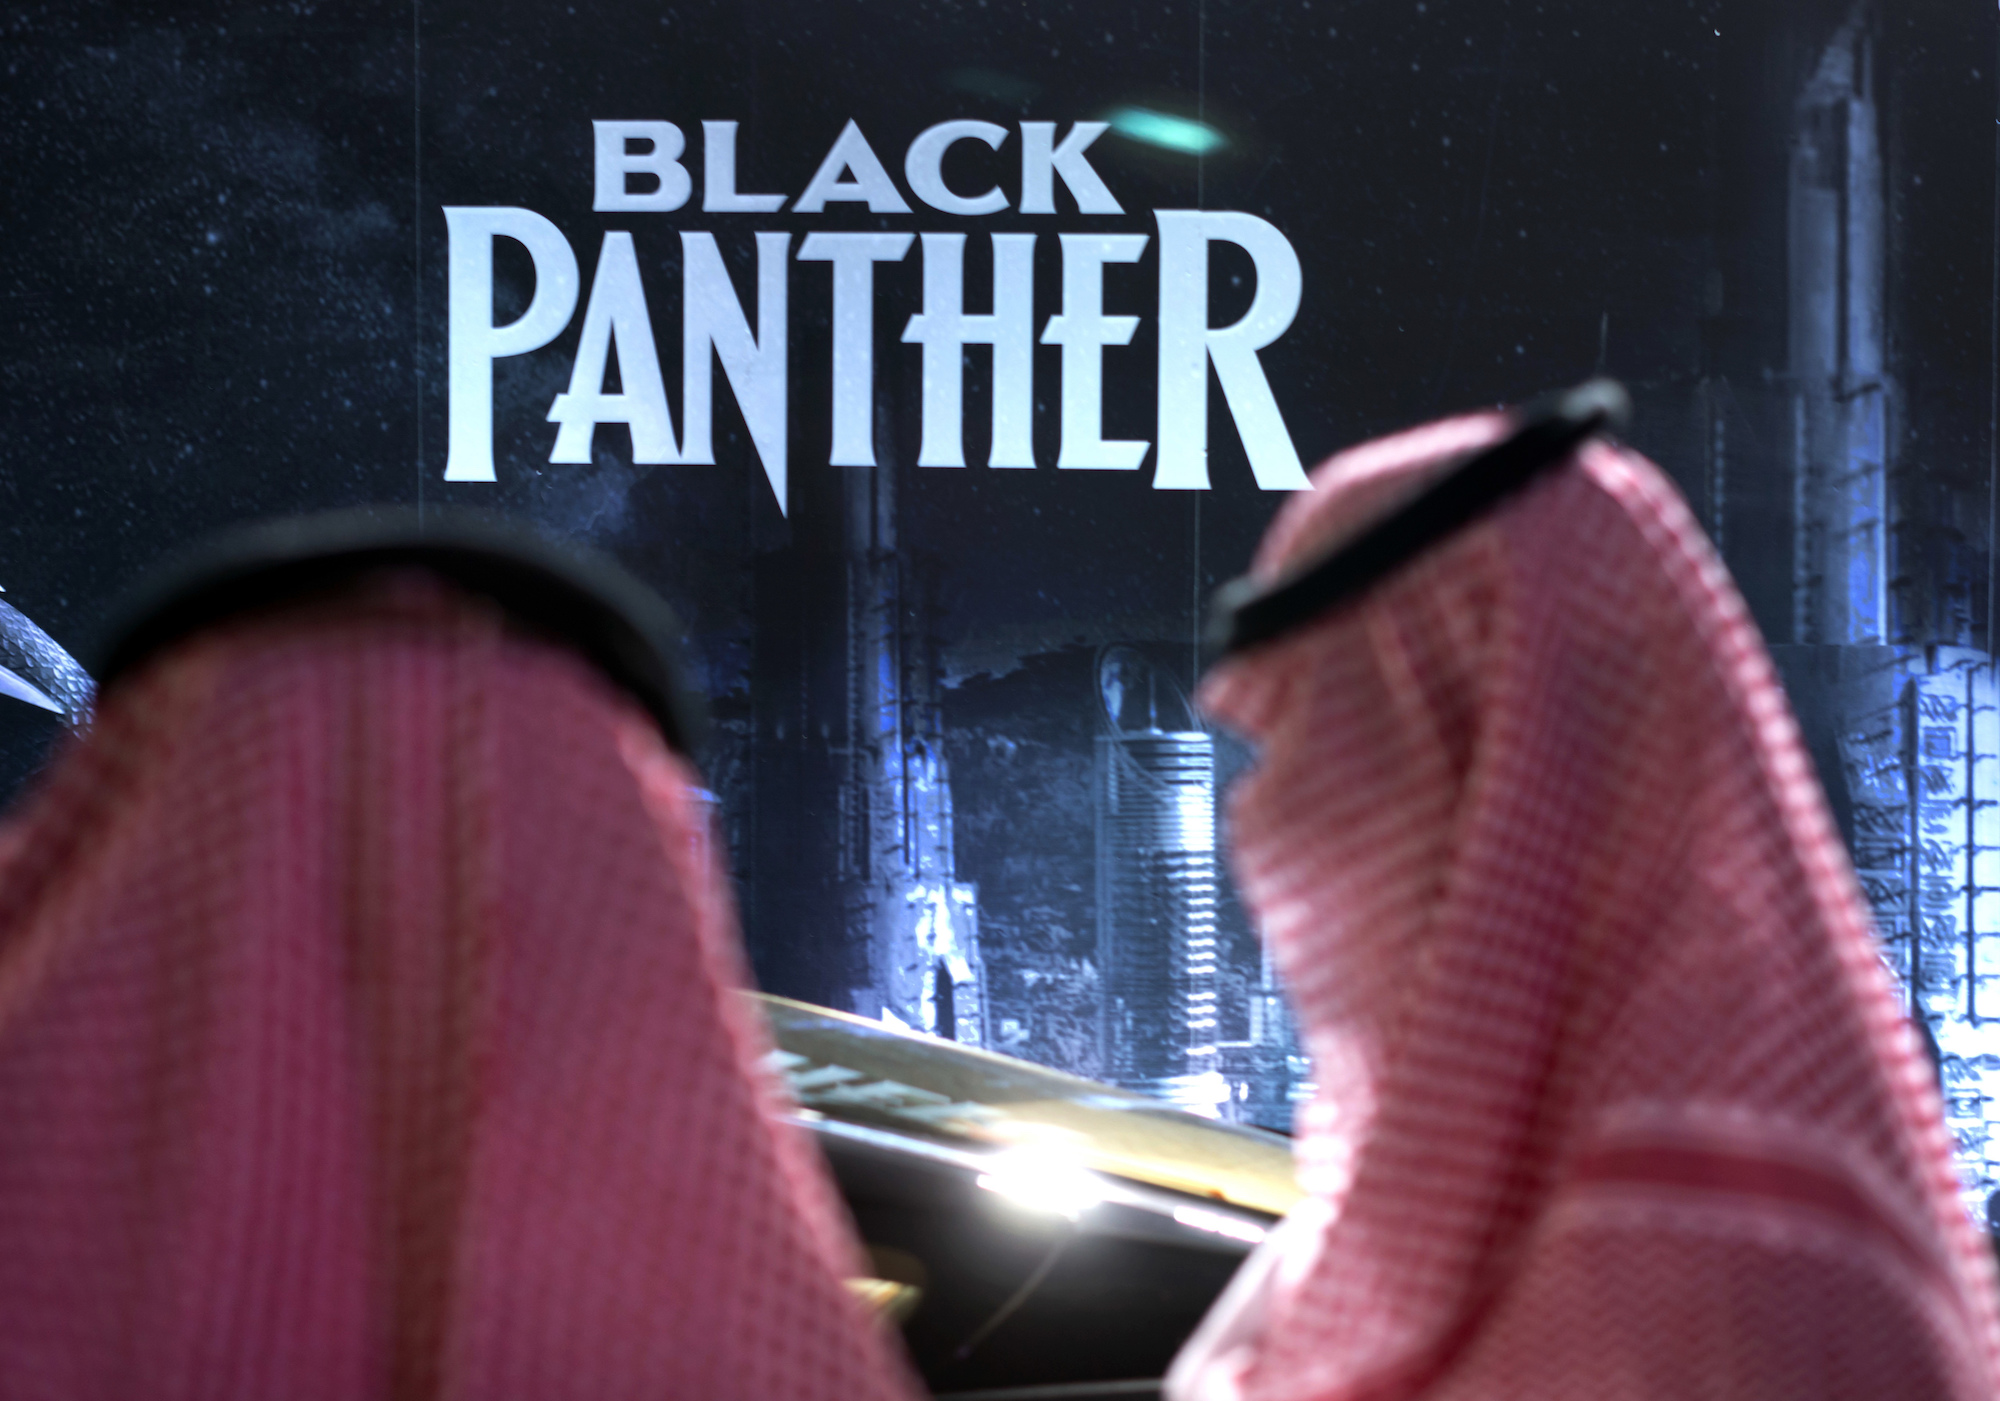 Saudis stand in front of poster for Black Panther